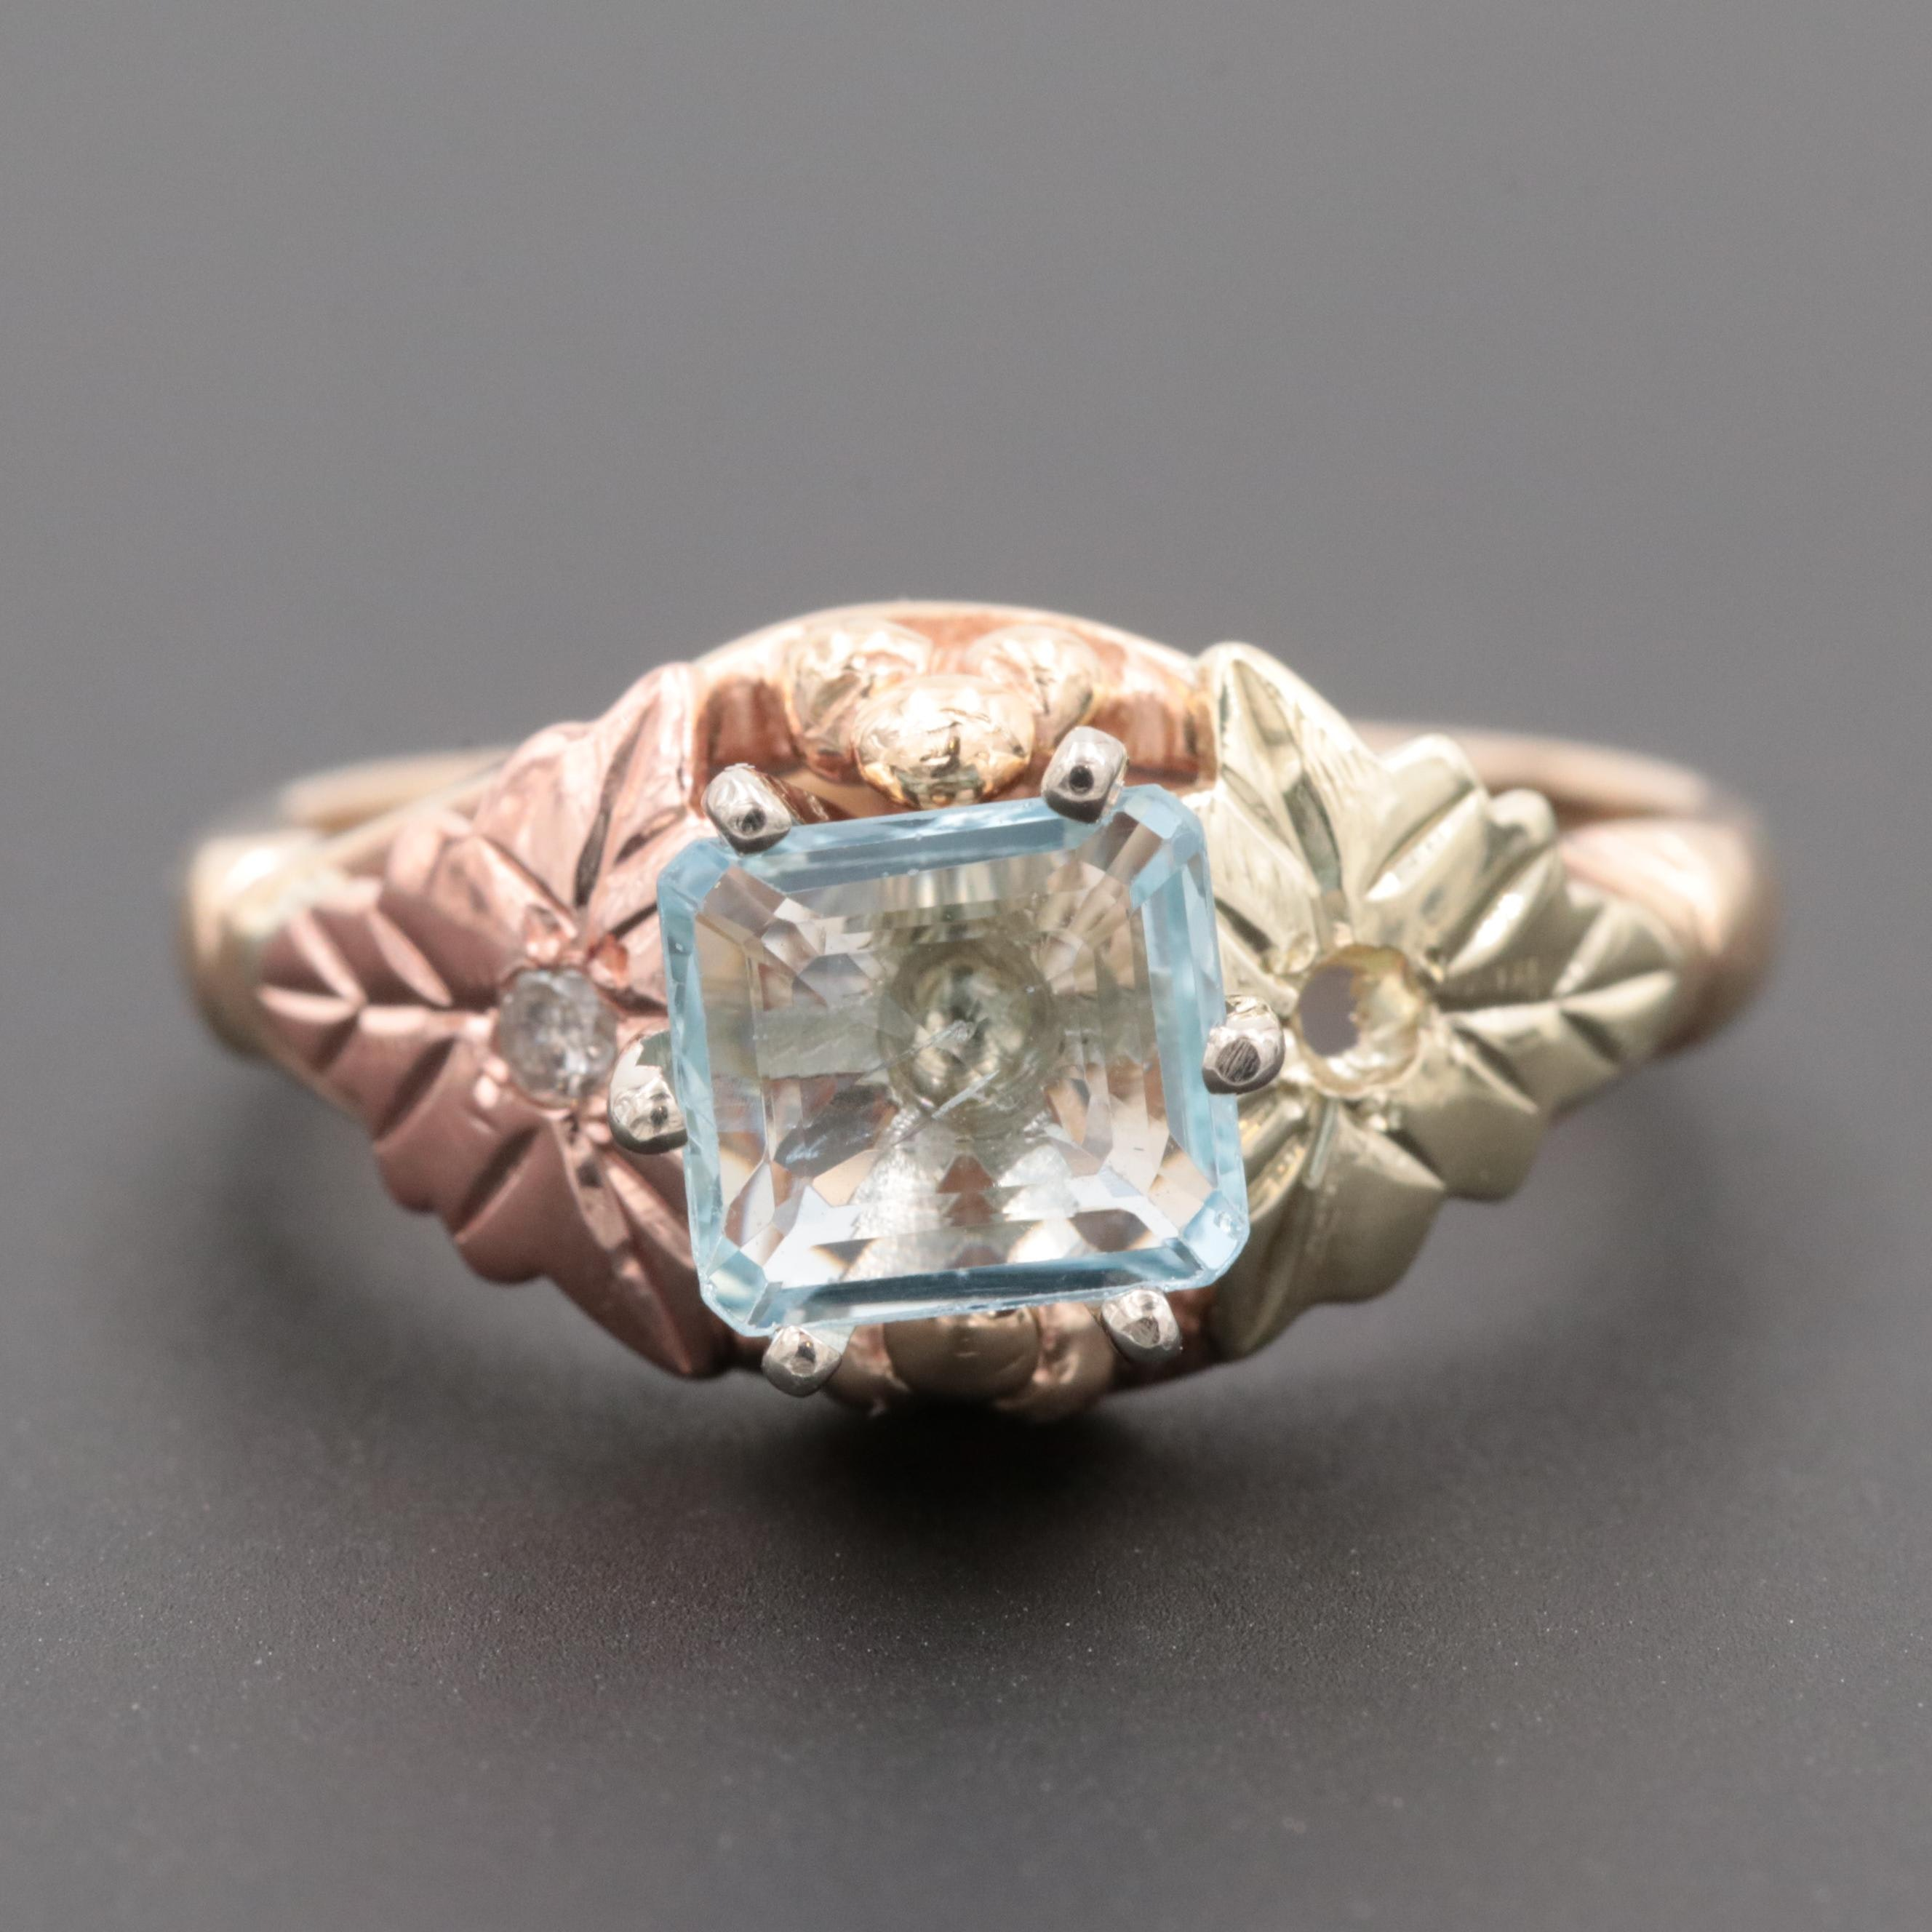 10K Yellow Gold Aquamarine and Diamond Ring with Rose and Green Gold Accents